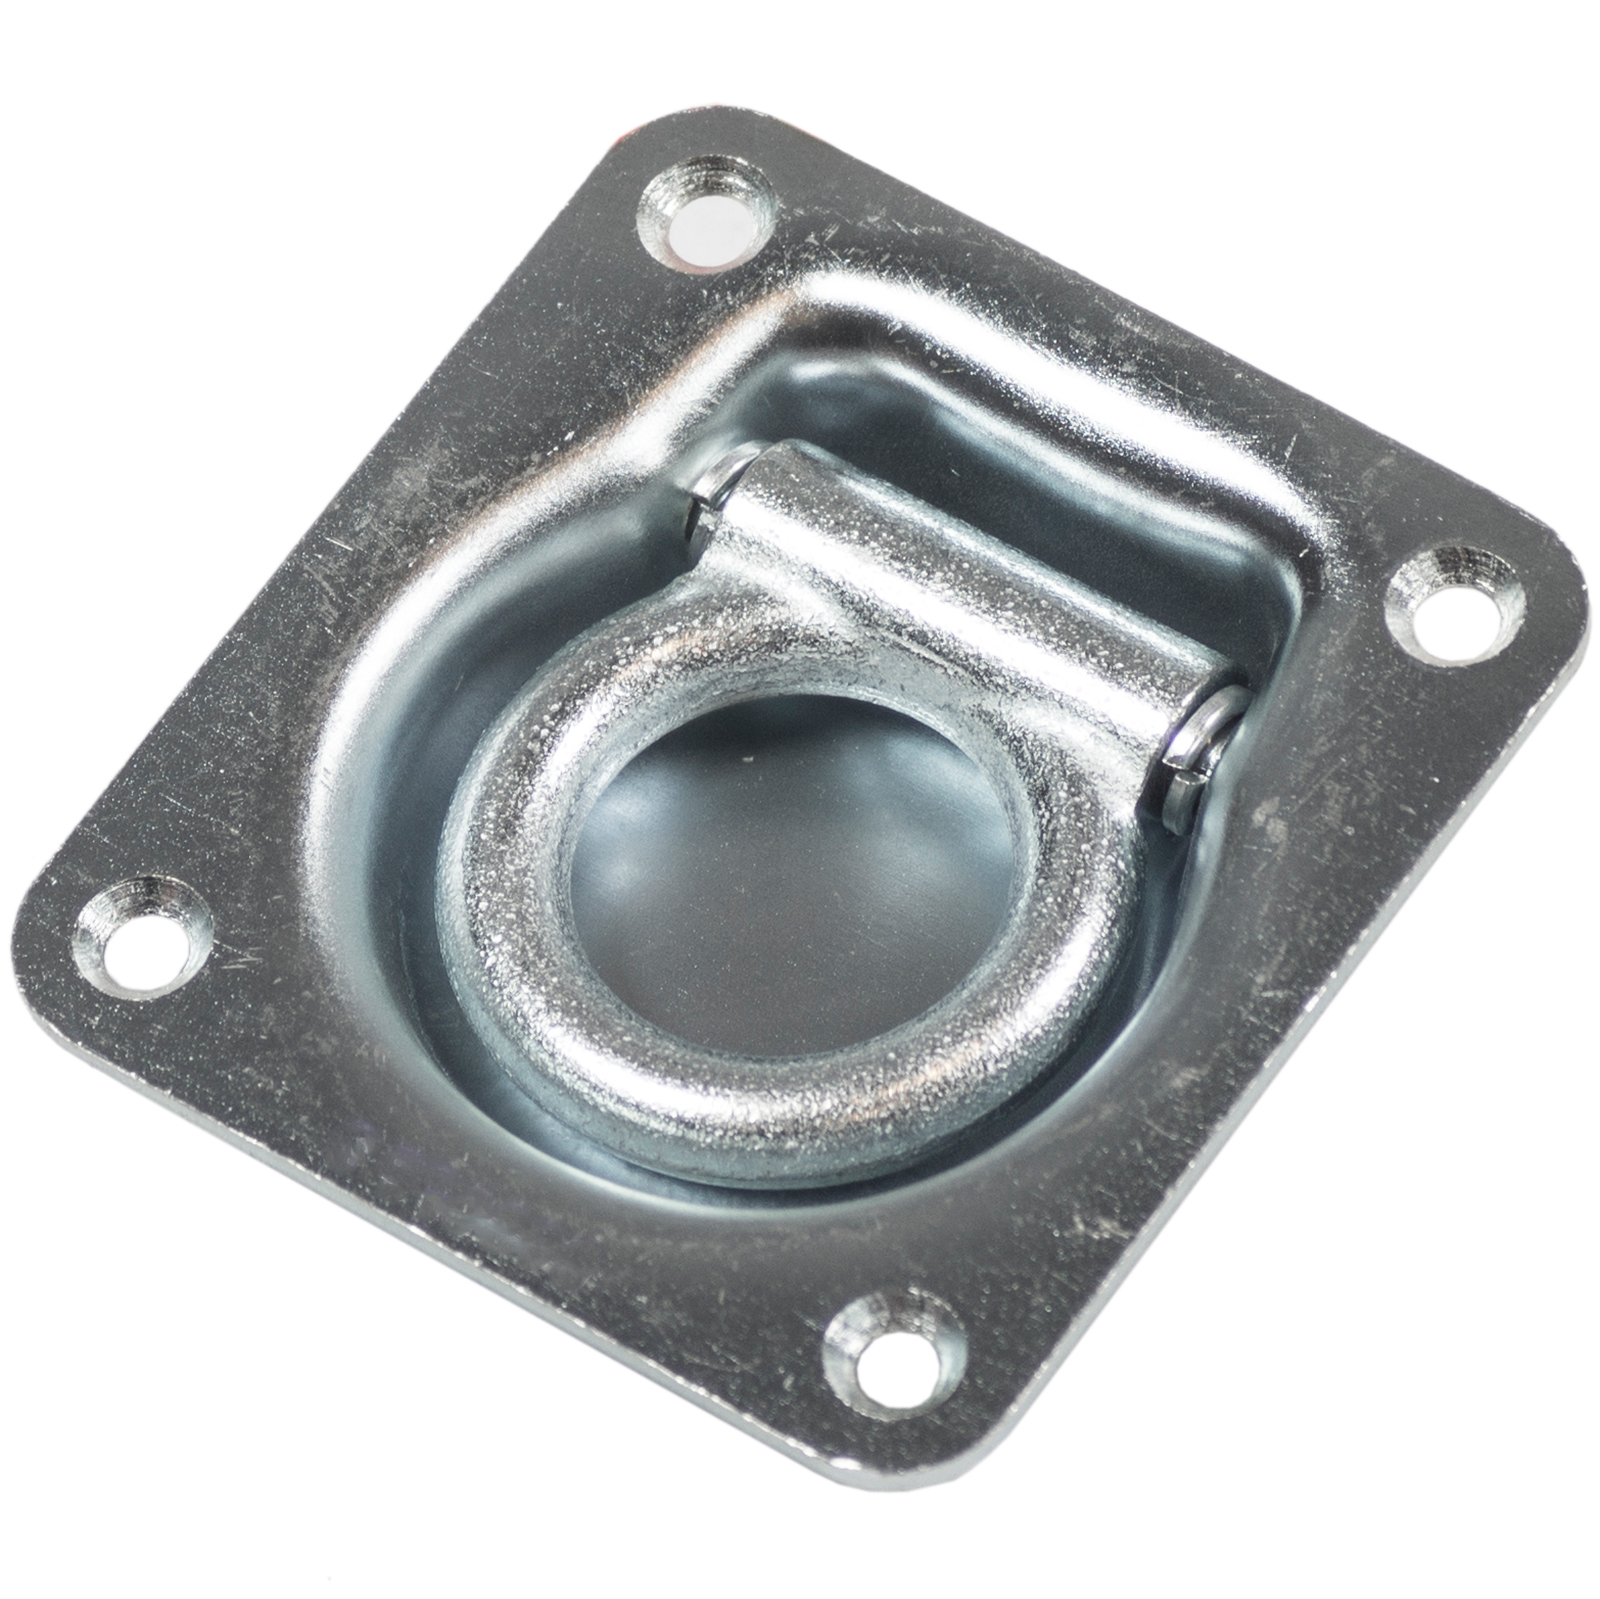 Zinc Plated Lashing Ring Fastener